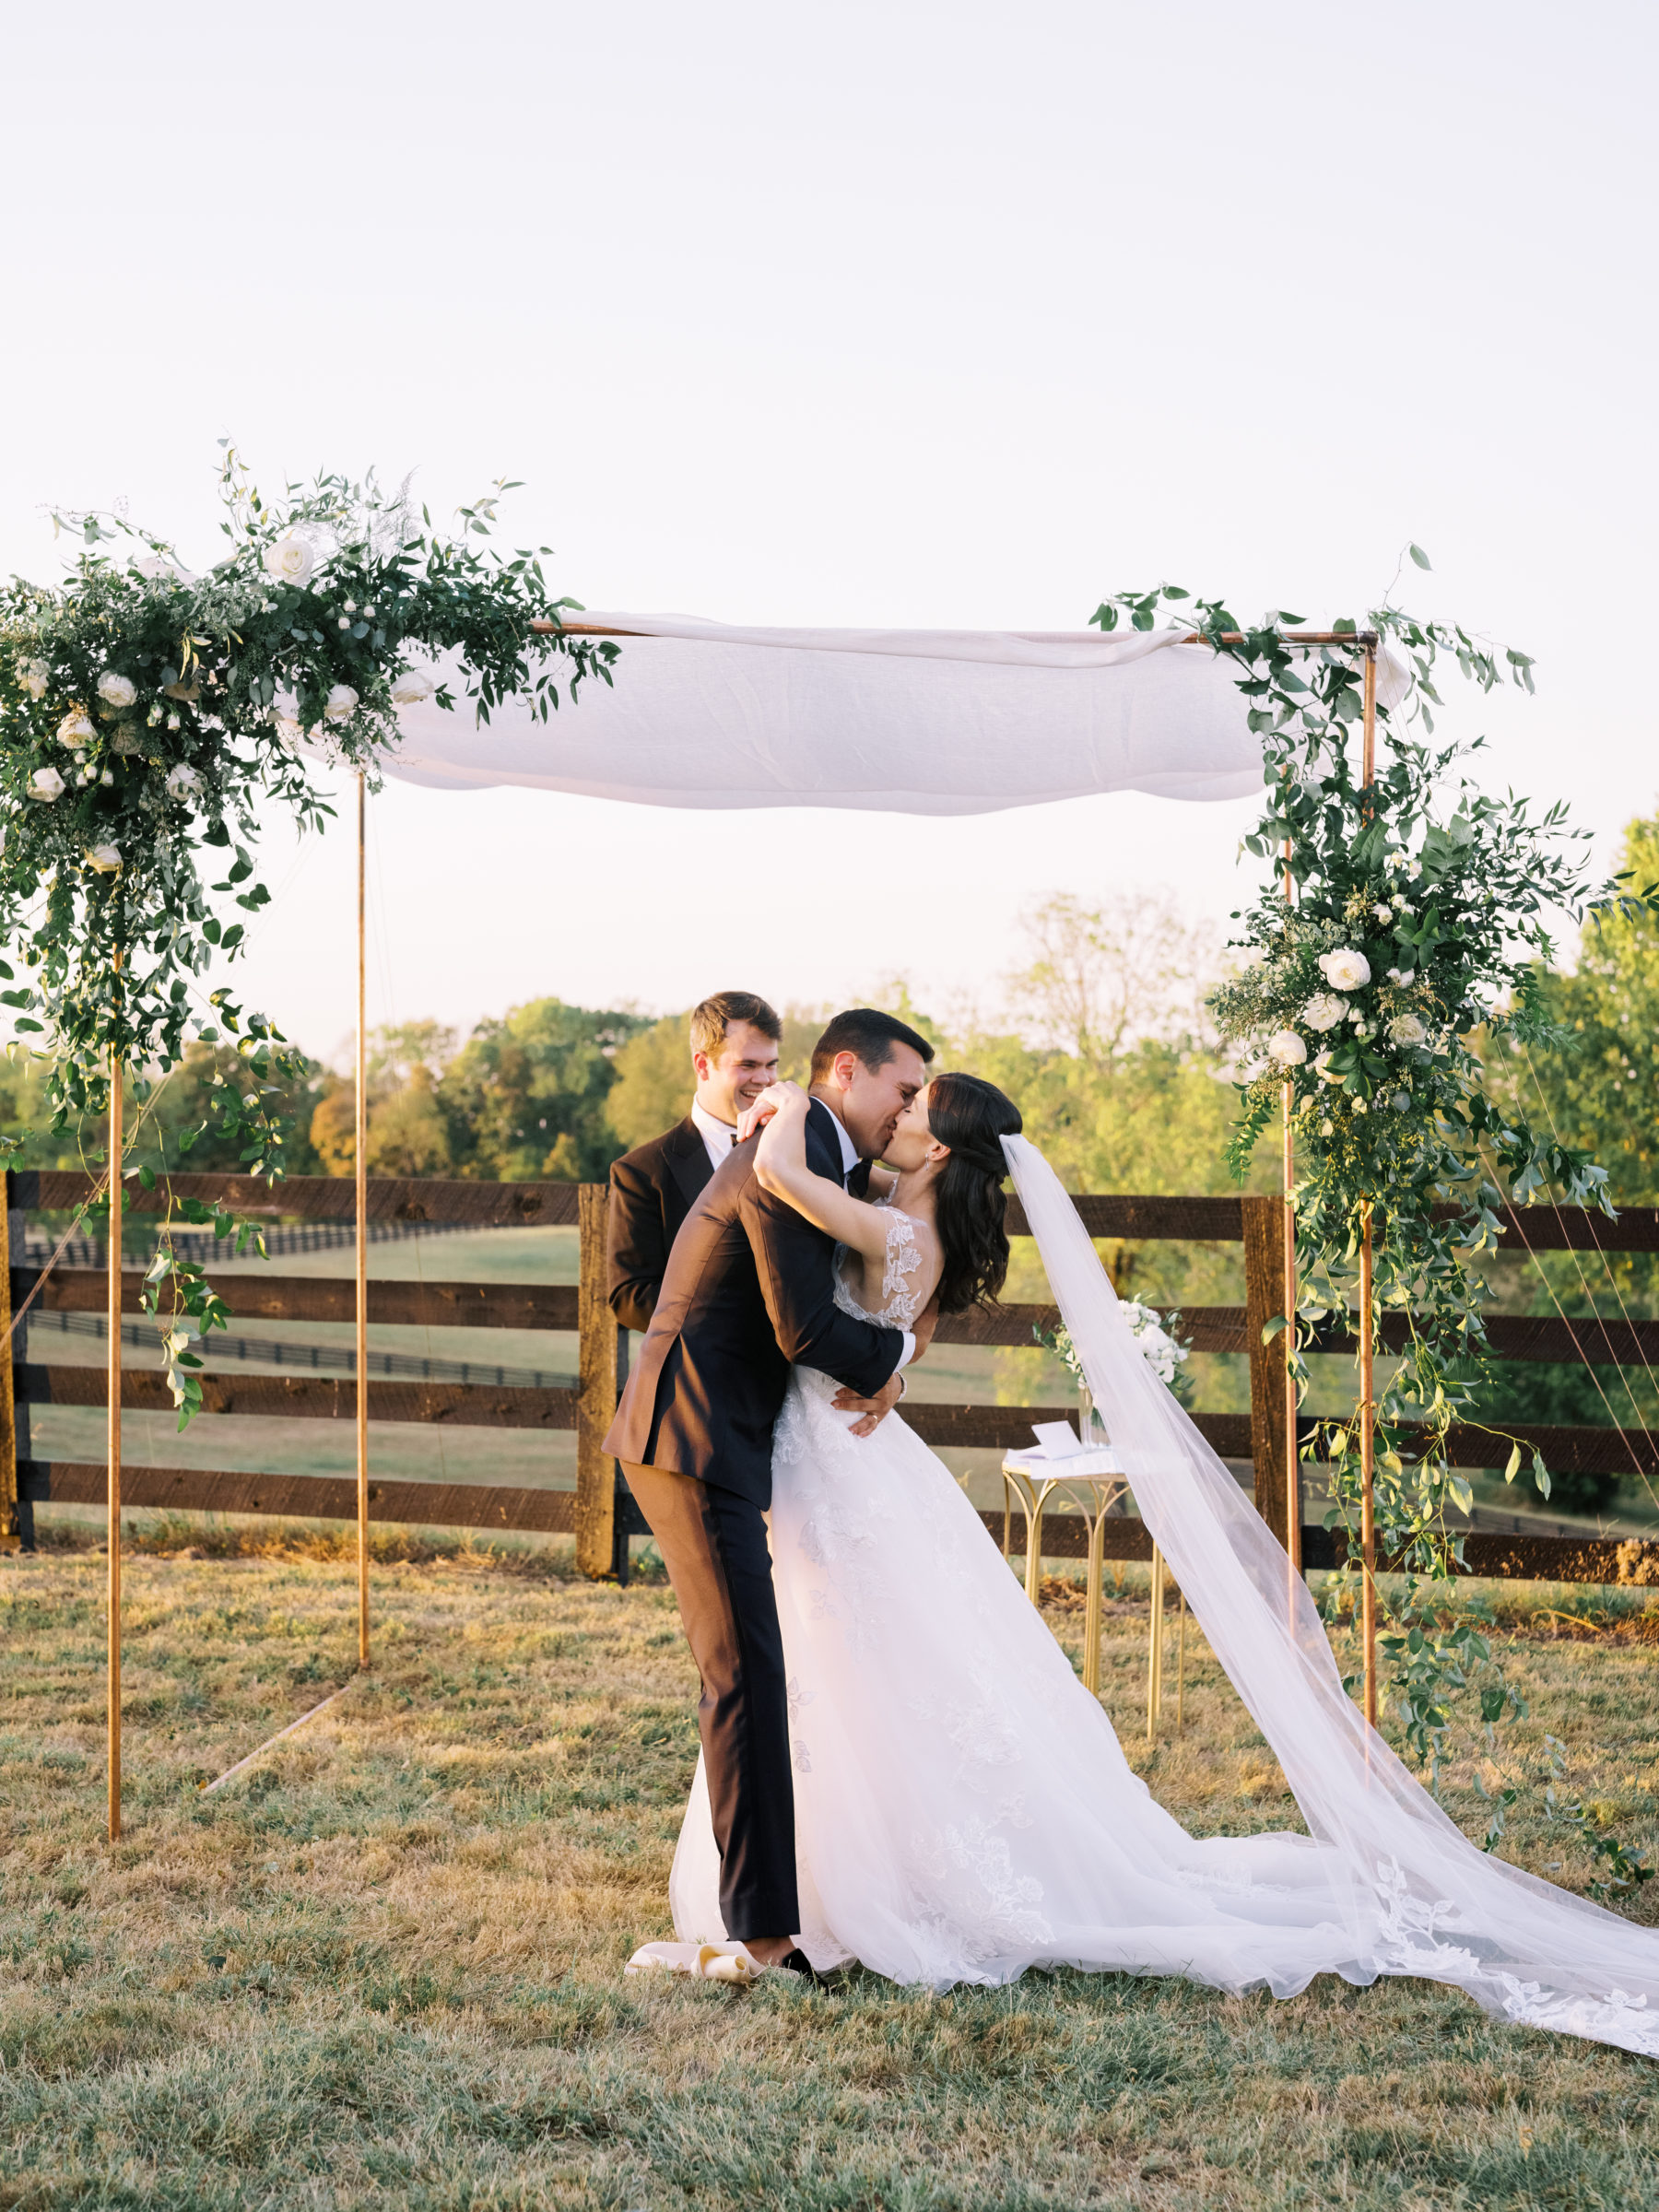 Greenery wedding chuppah captured by Nathan Westerfield